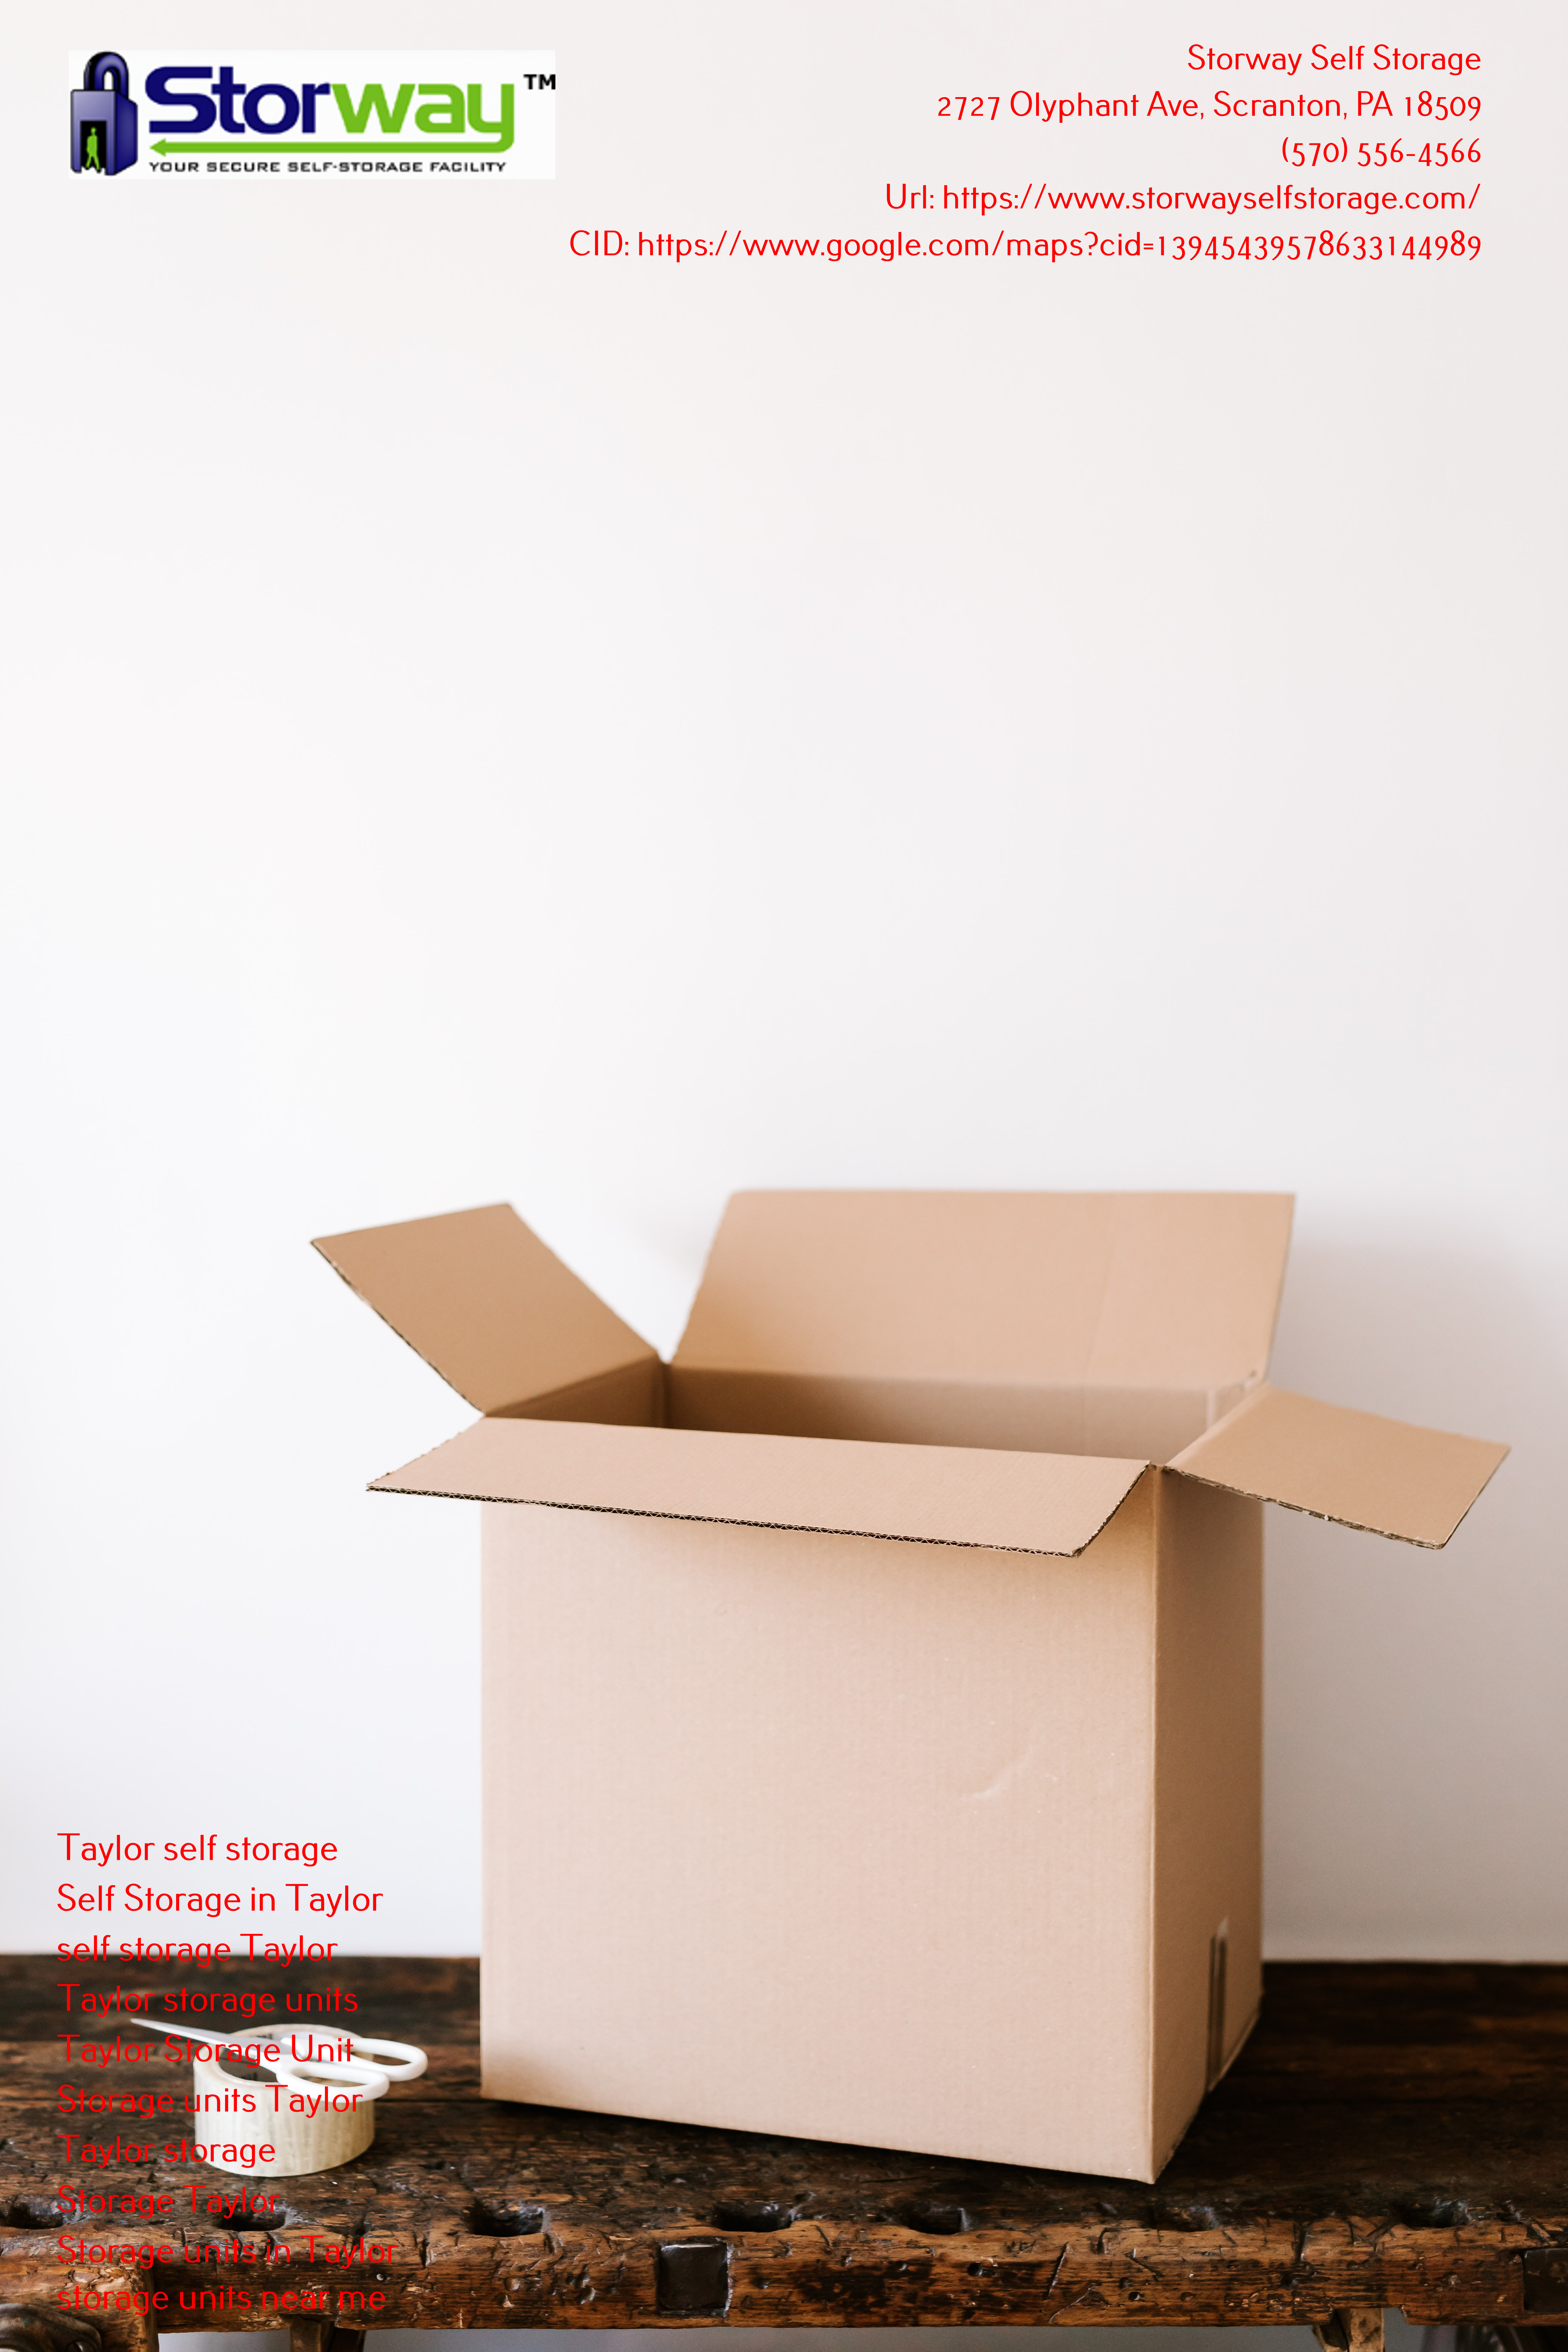 Scranton, PA Self Storages - For Your Relocation Needs